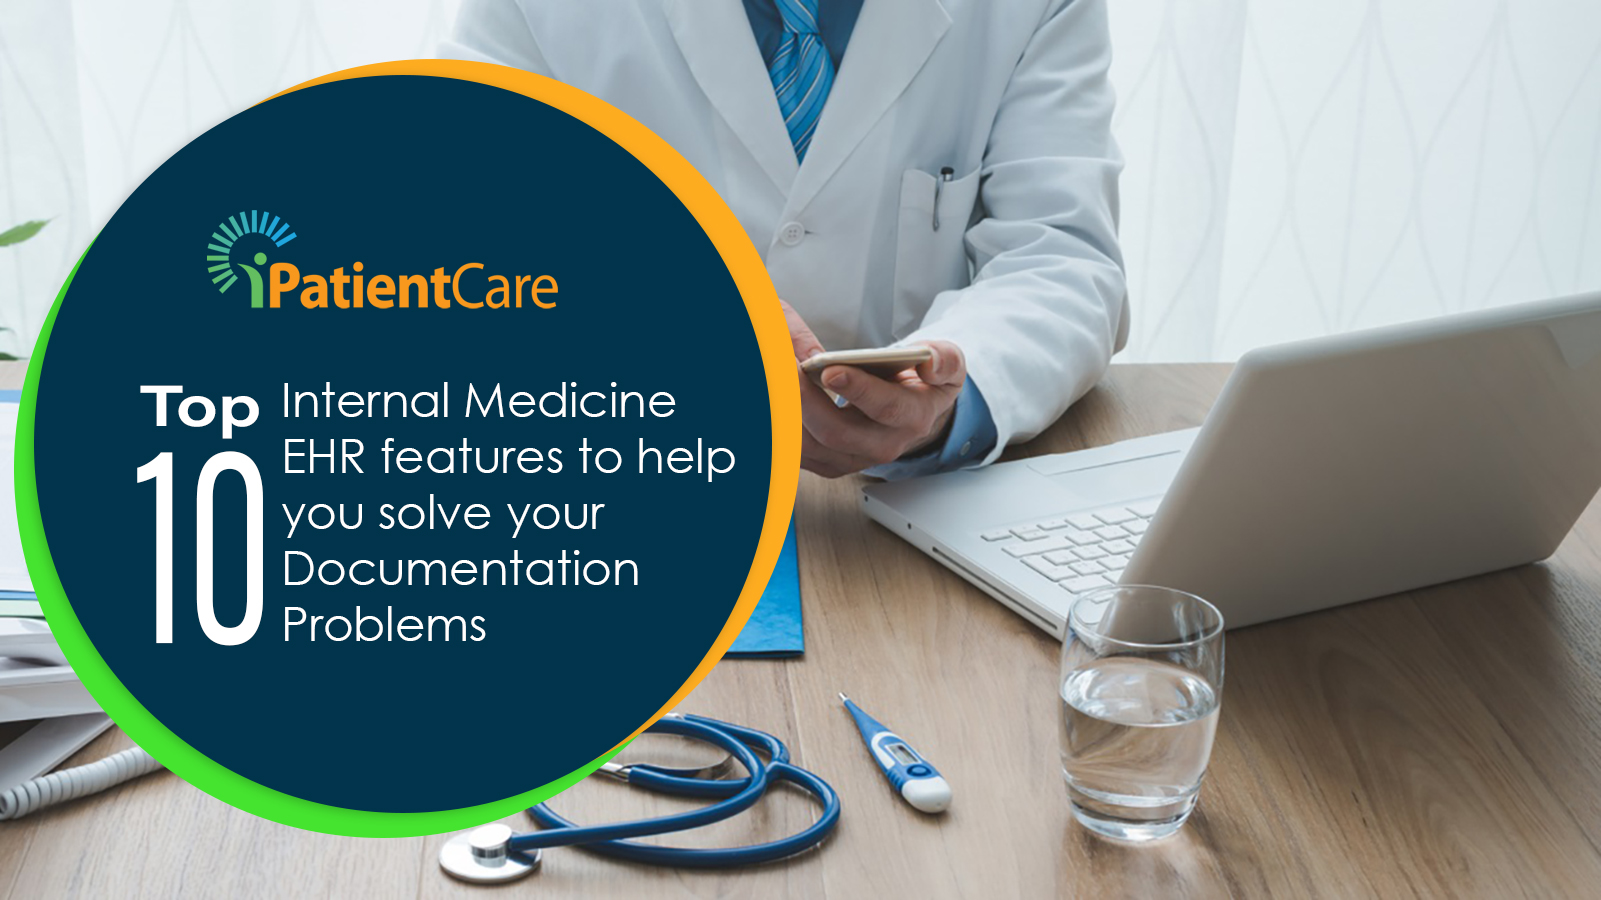 iPatientCare Blog - Top 10 Internal Medicine EHR Features to help you solve your Documentation Problems